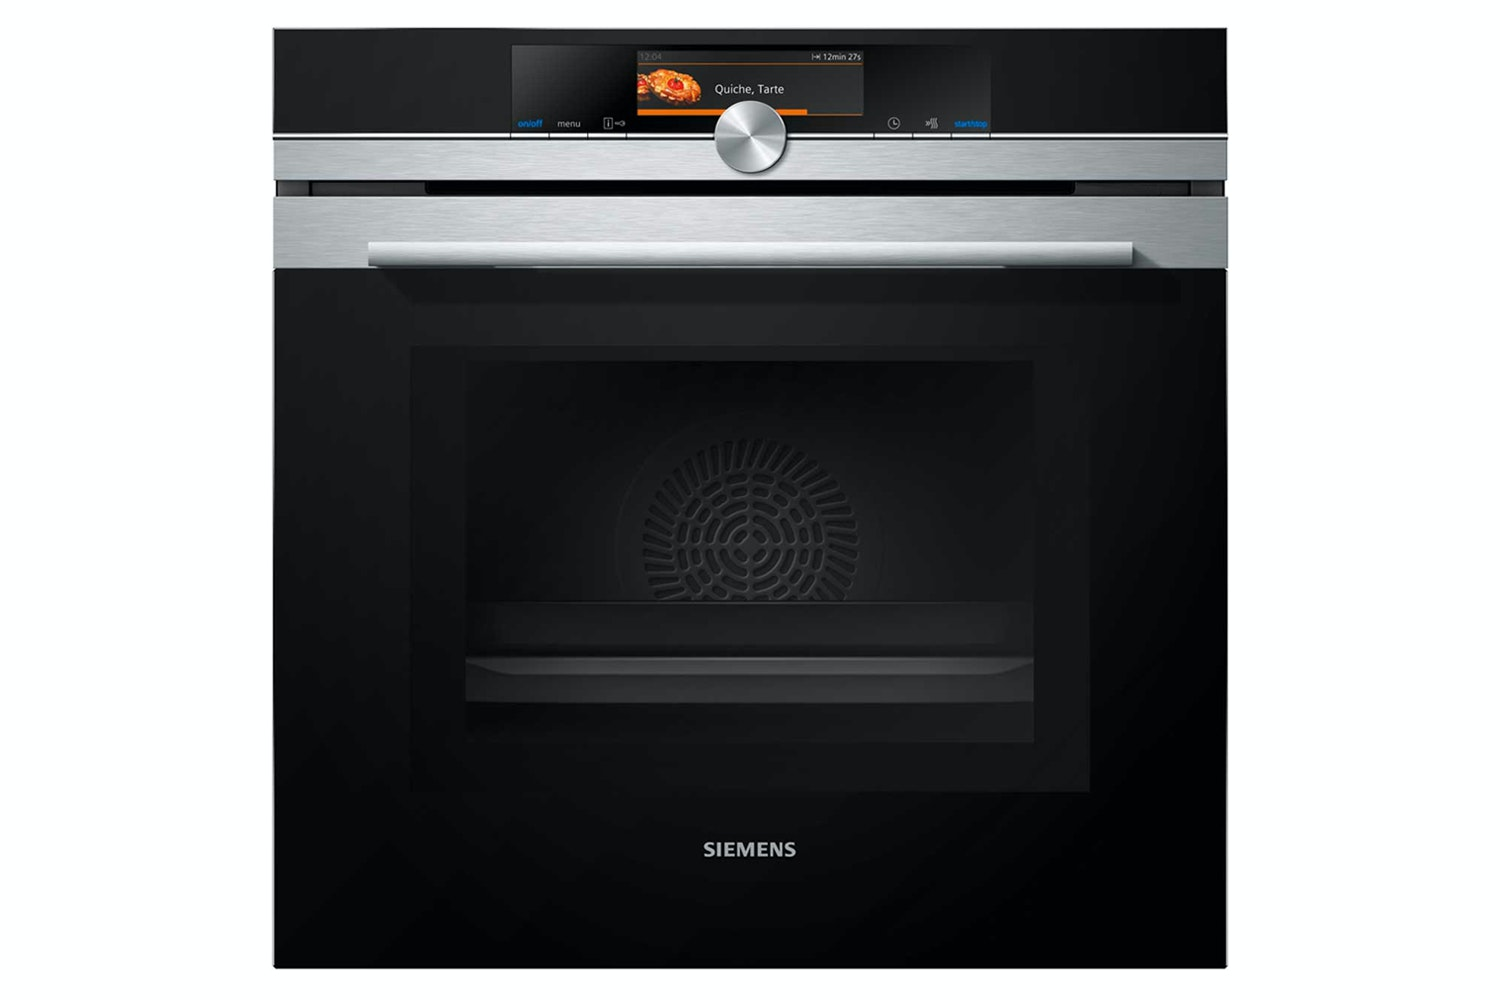 Siemens iQ700 Oven with Microwave | HM678G4S6B